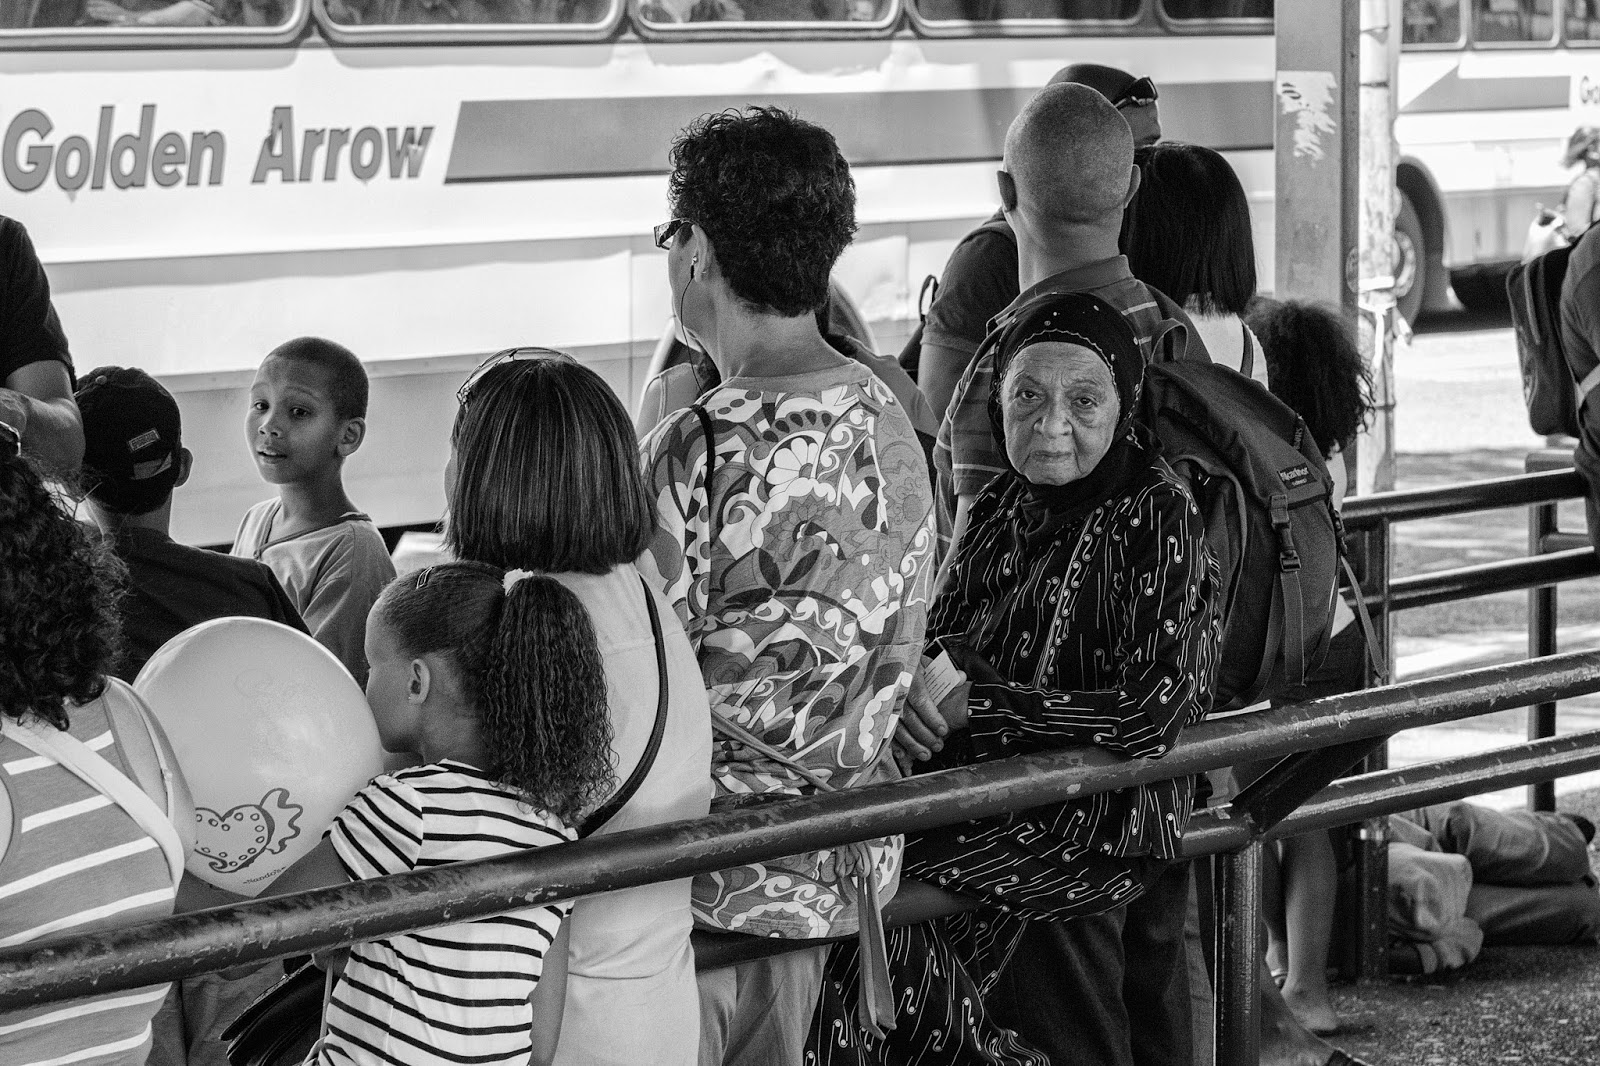 A woman looks back from the bus queue - the only other face visible is a young boy.